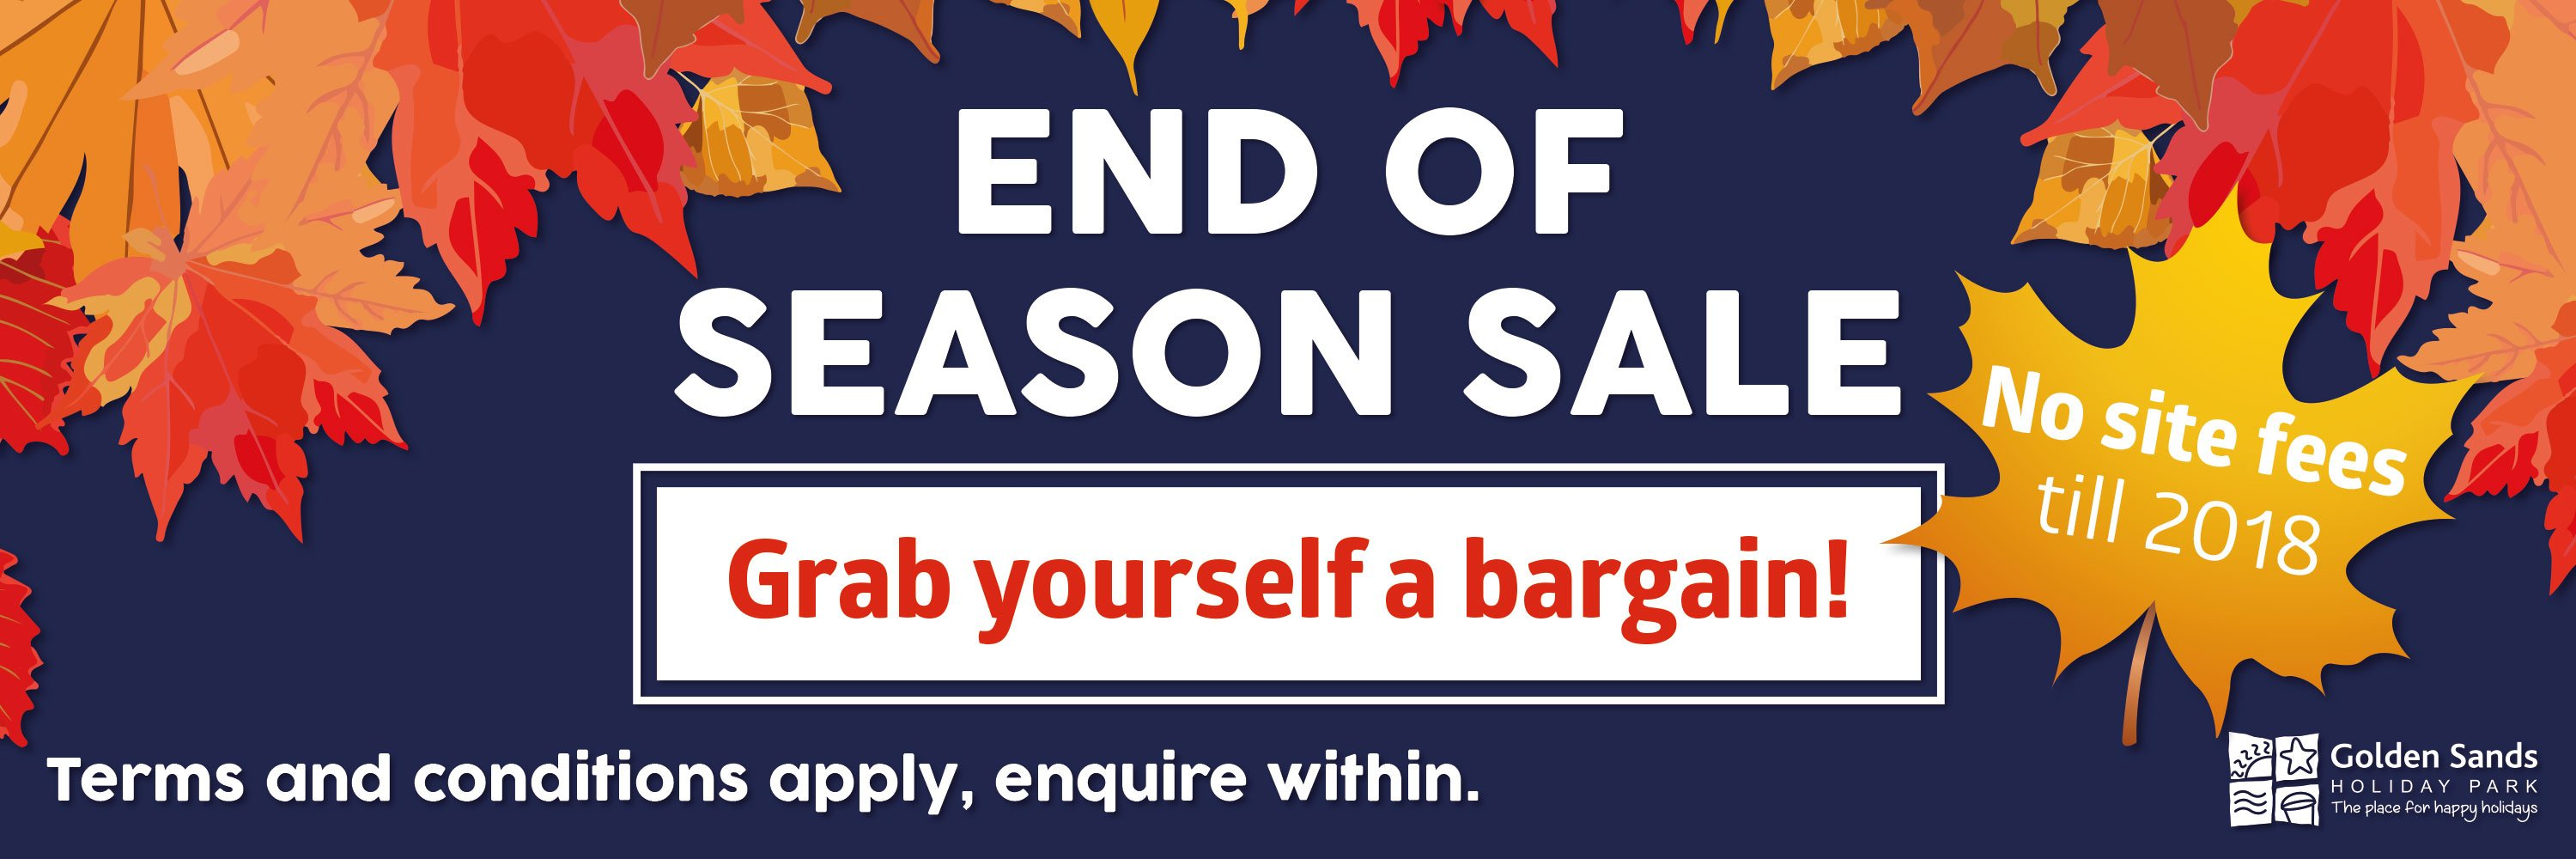 End of Season Sale banner